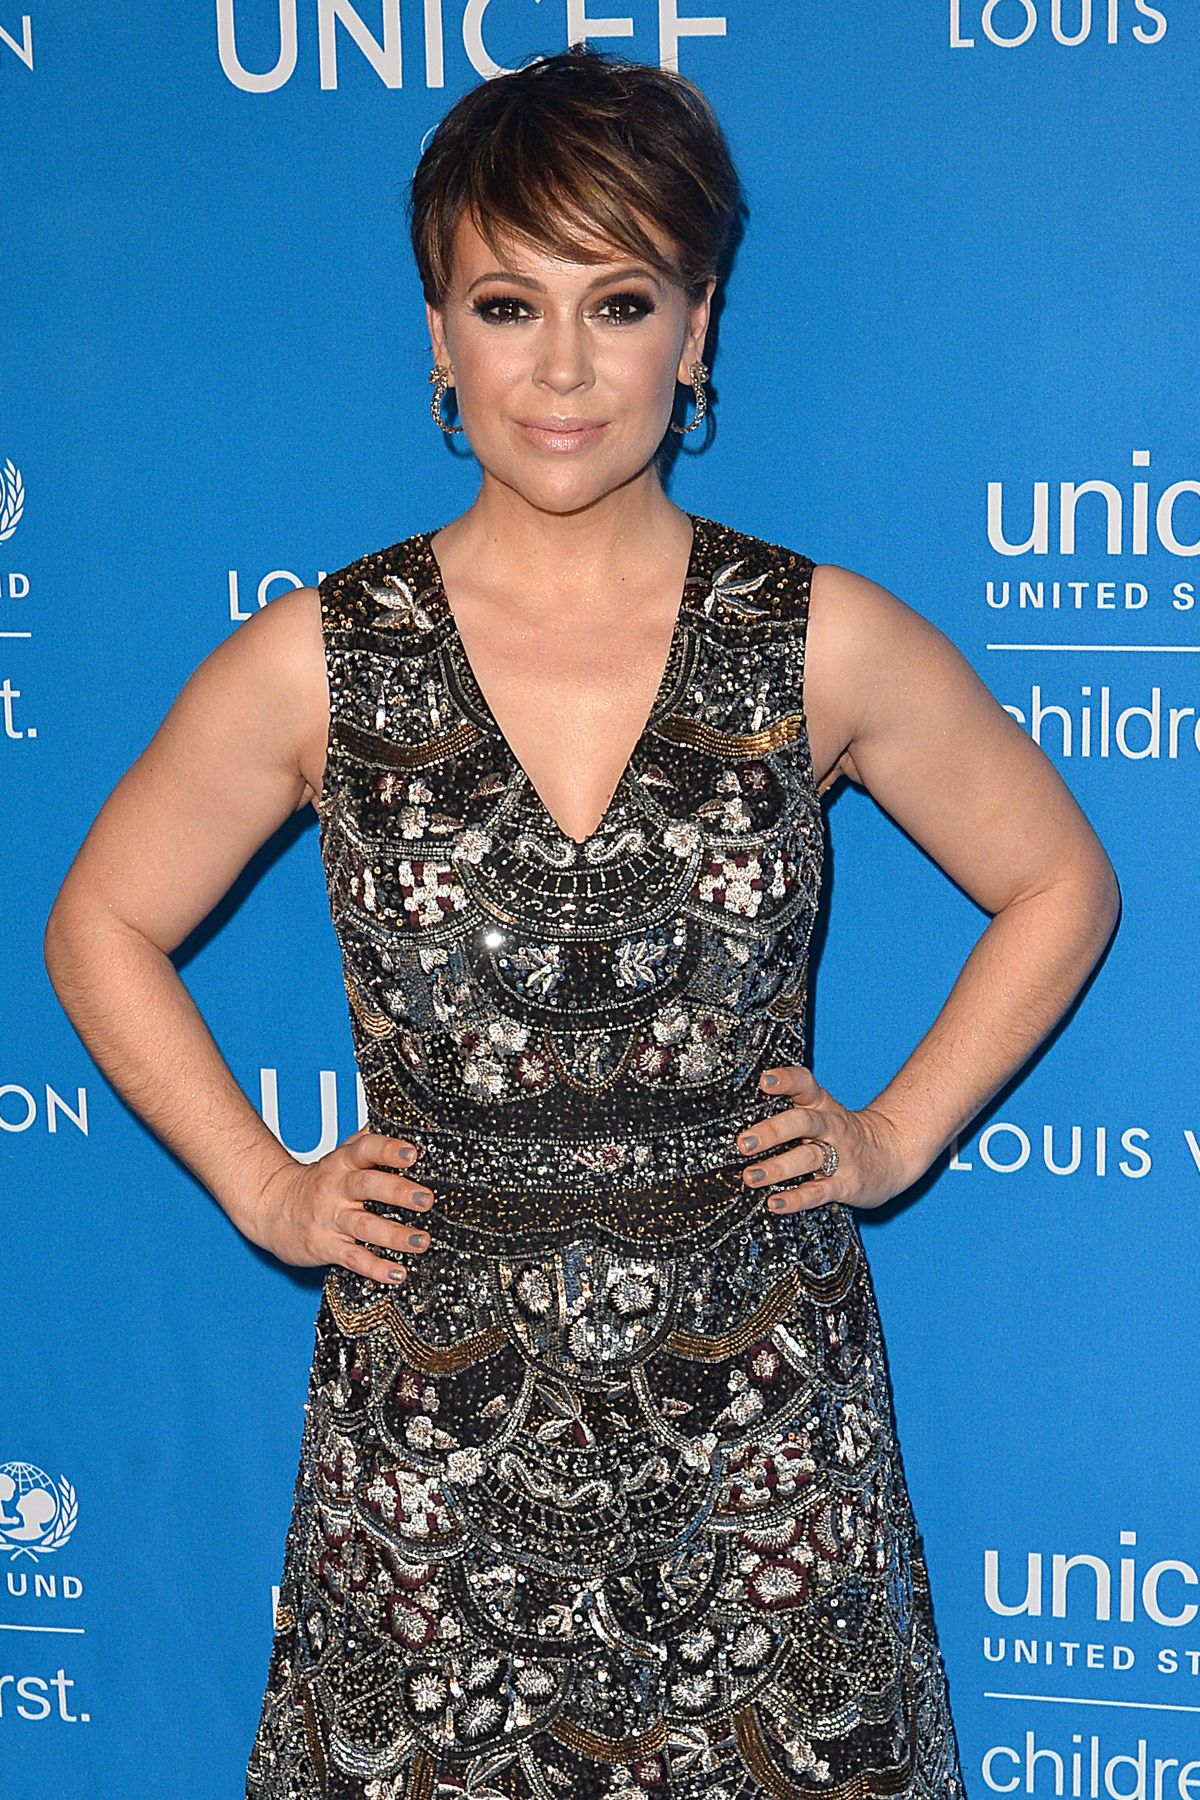 ALYSSA MILANO at 6th Biennial Unicef Ball in Beverly Hills 01/12/2016